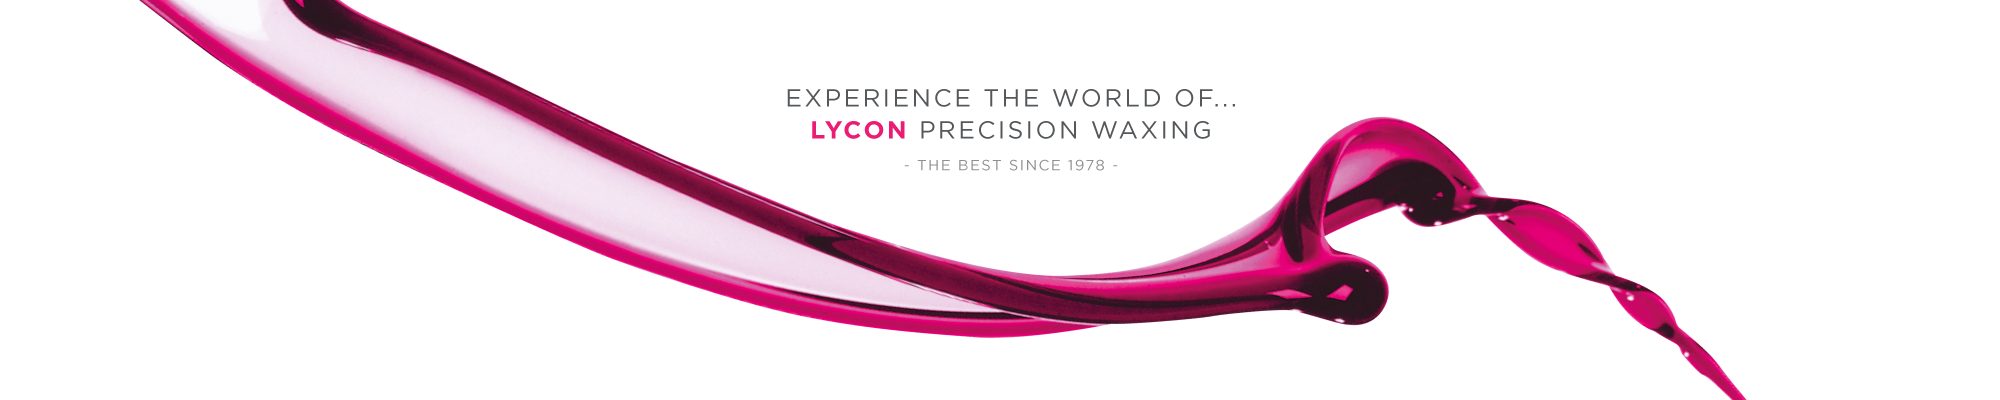 Experience the world of Lycon precision waxing